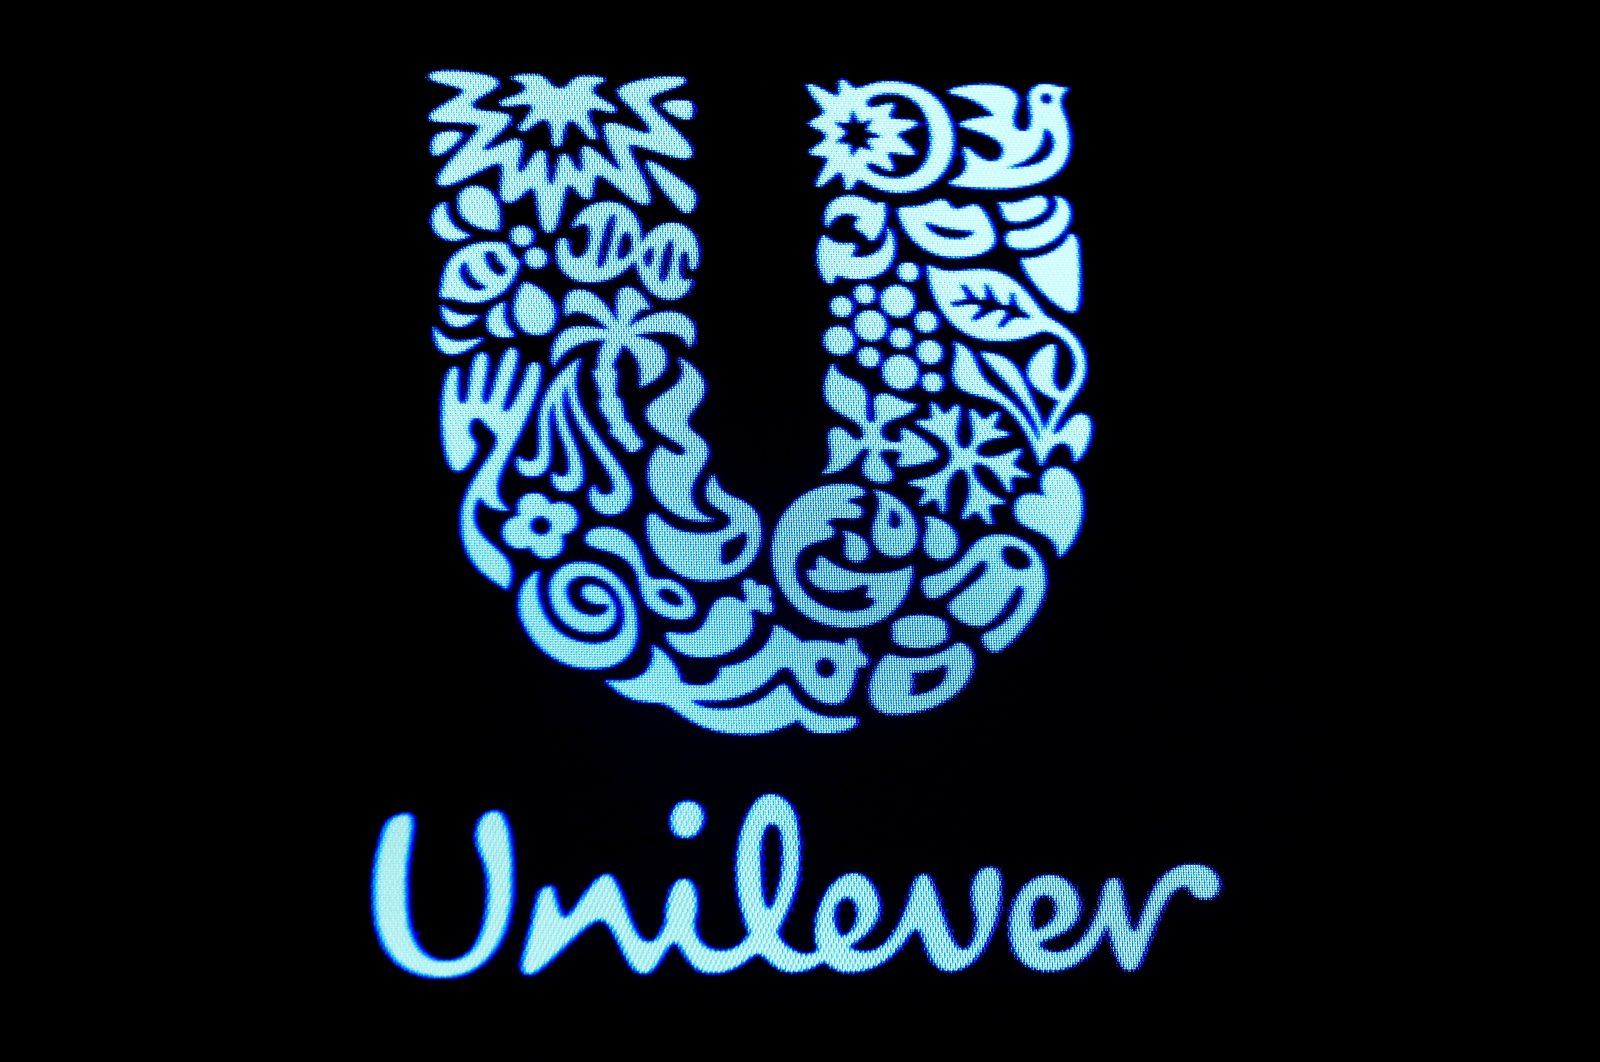 The company logo for Unilever is displayed on a screen on the floor of the New York Stock Exchange (NYSE), New York, U.S., Feb. 17, 2017. (Reuters Photo)